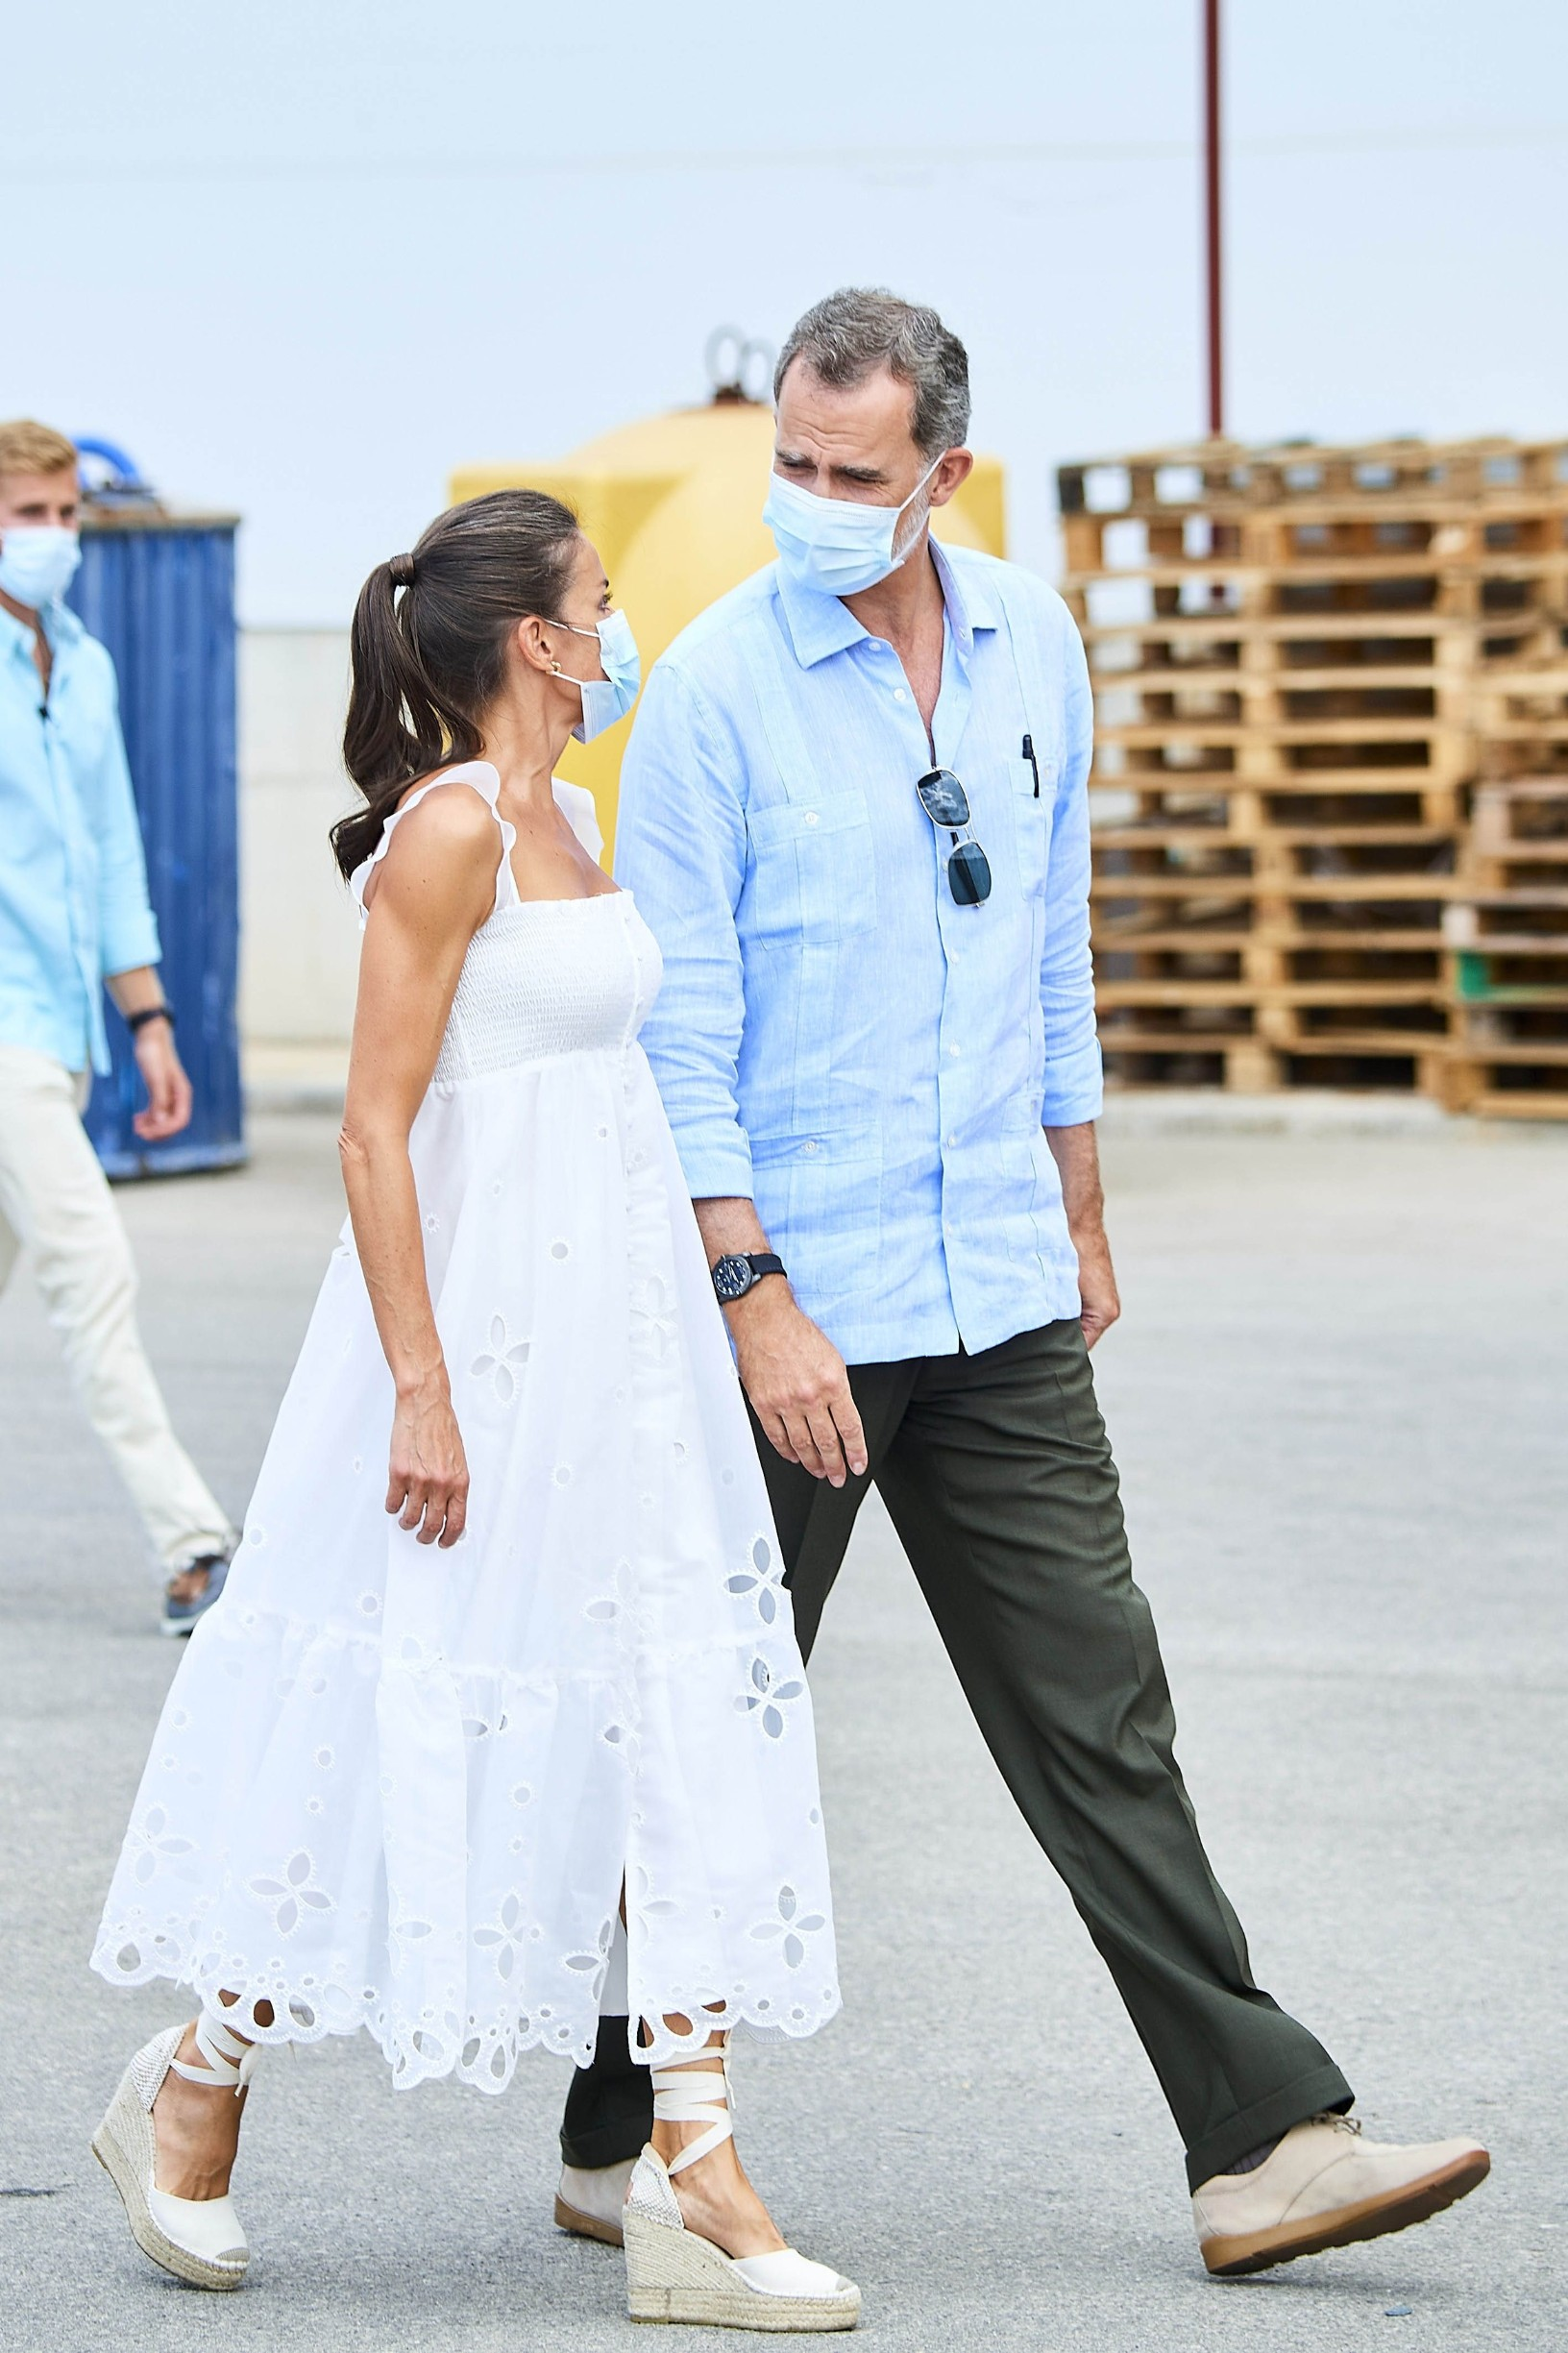 13-08-2020 Menorca Queen Letizia and King Felipe during a cheese-making demonstration at the Insular Livestock Cooperative (COINGA) in Alaior on the Balearic island of Palma de Menorca.  No Spain  ' PPE/Thorton //THORTON-PPE_1.1076/2008131818/Credit:THORTON/PICTURE PRESS EUR/SIPA/2008131820,Image: 552171393, License: Rights-managed, Restrictions: , Model Release: no, Credit line: THORTON/PICTURE PRESS EUR / Sipa Press / Profimedia